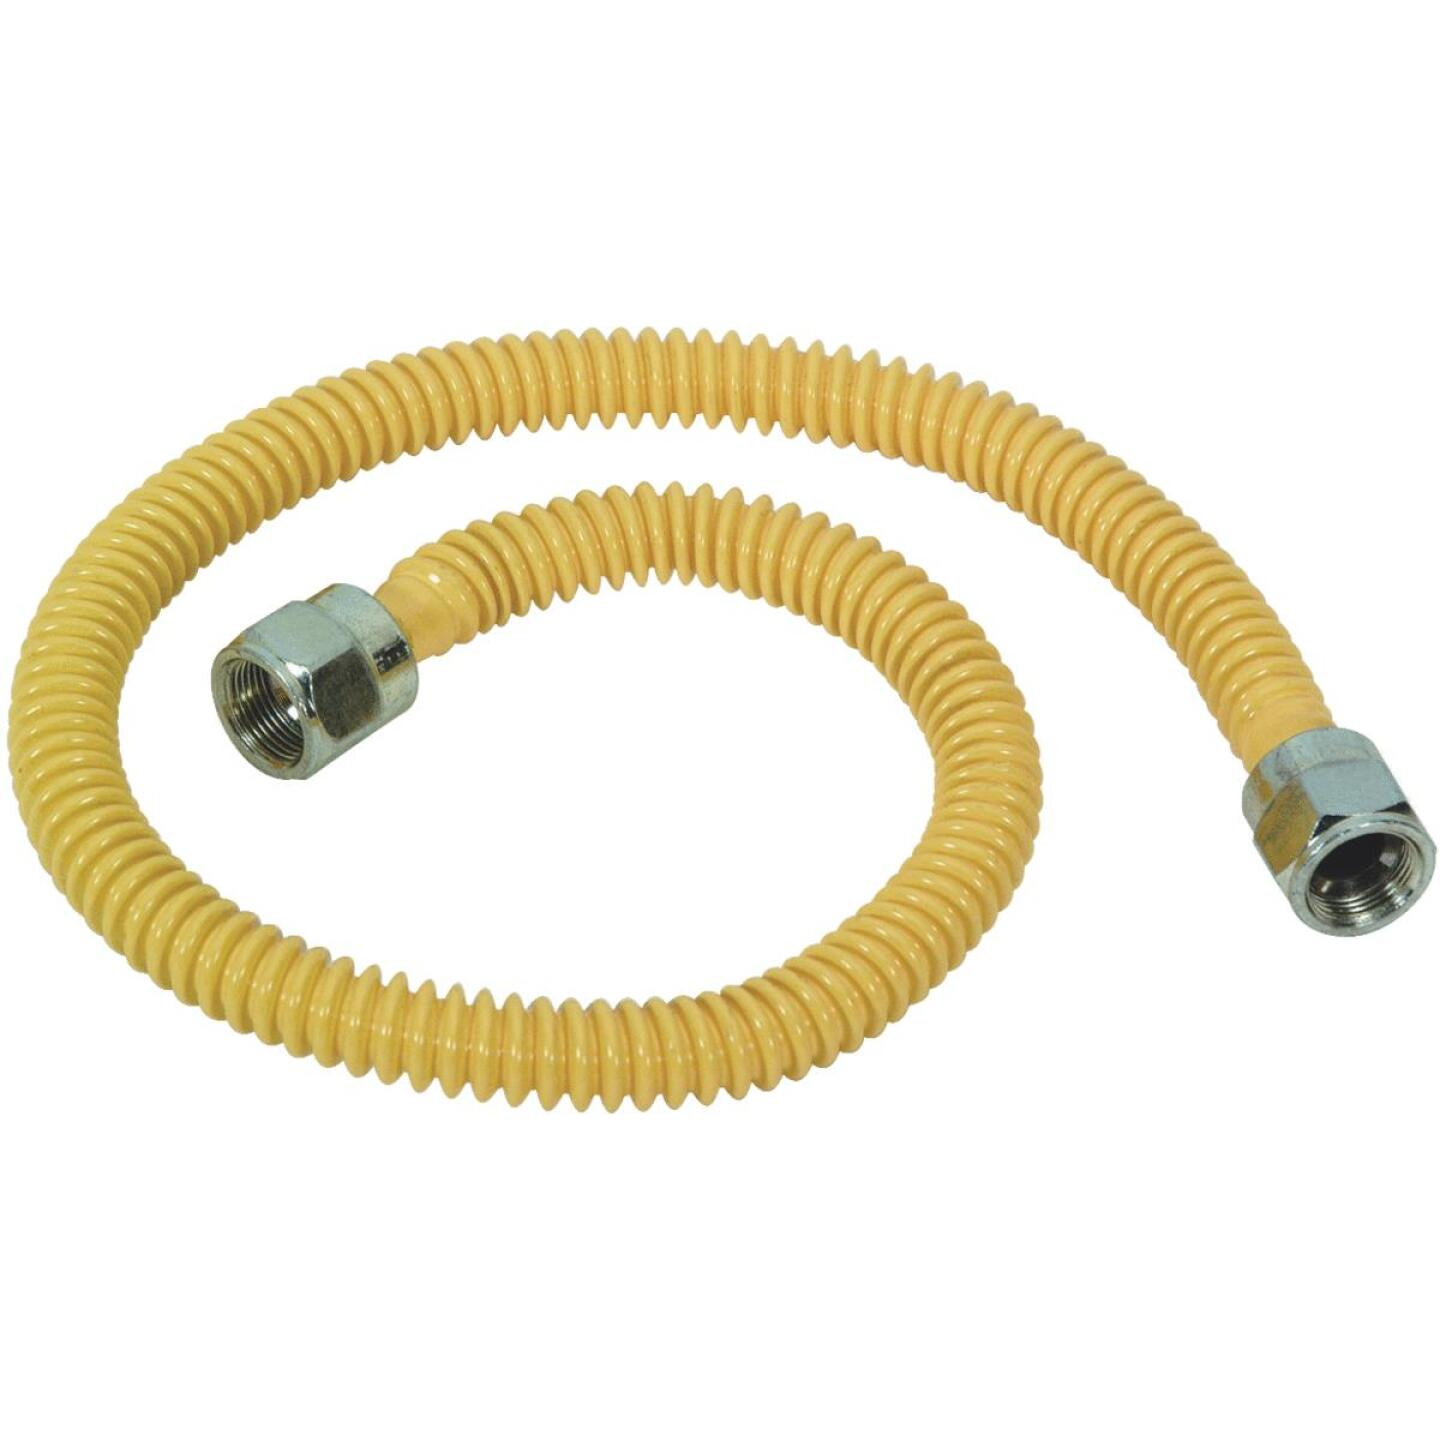 Watts 3/8 In. x 16 In. Flexible Gas Connector Image 1